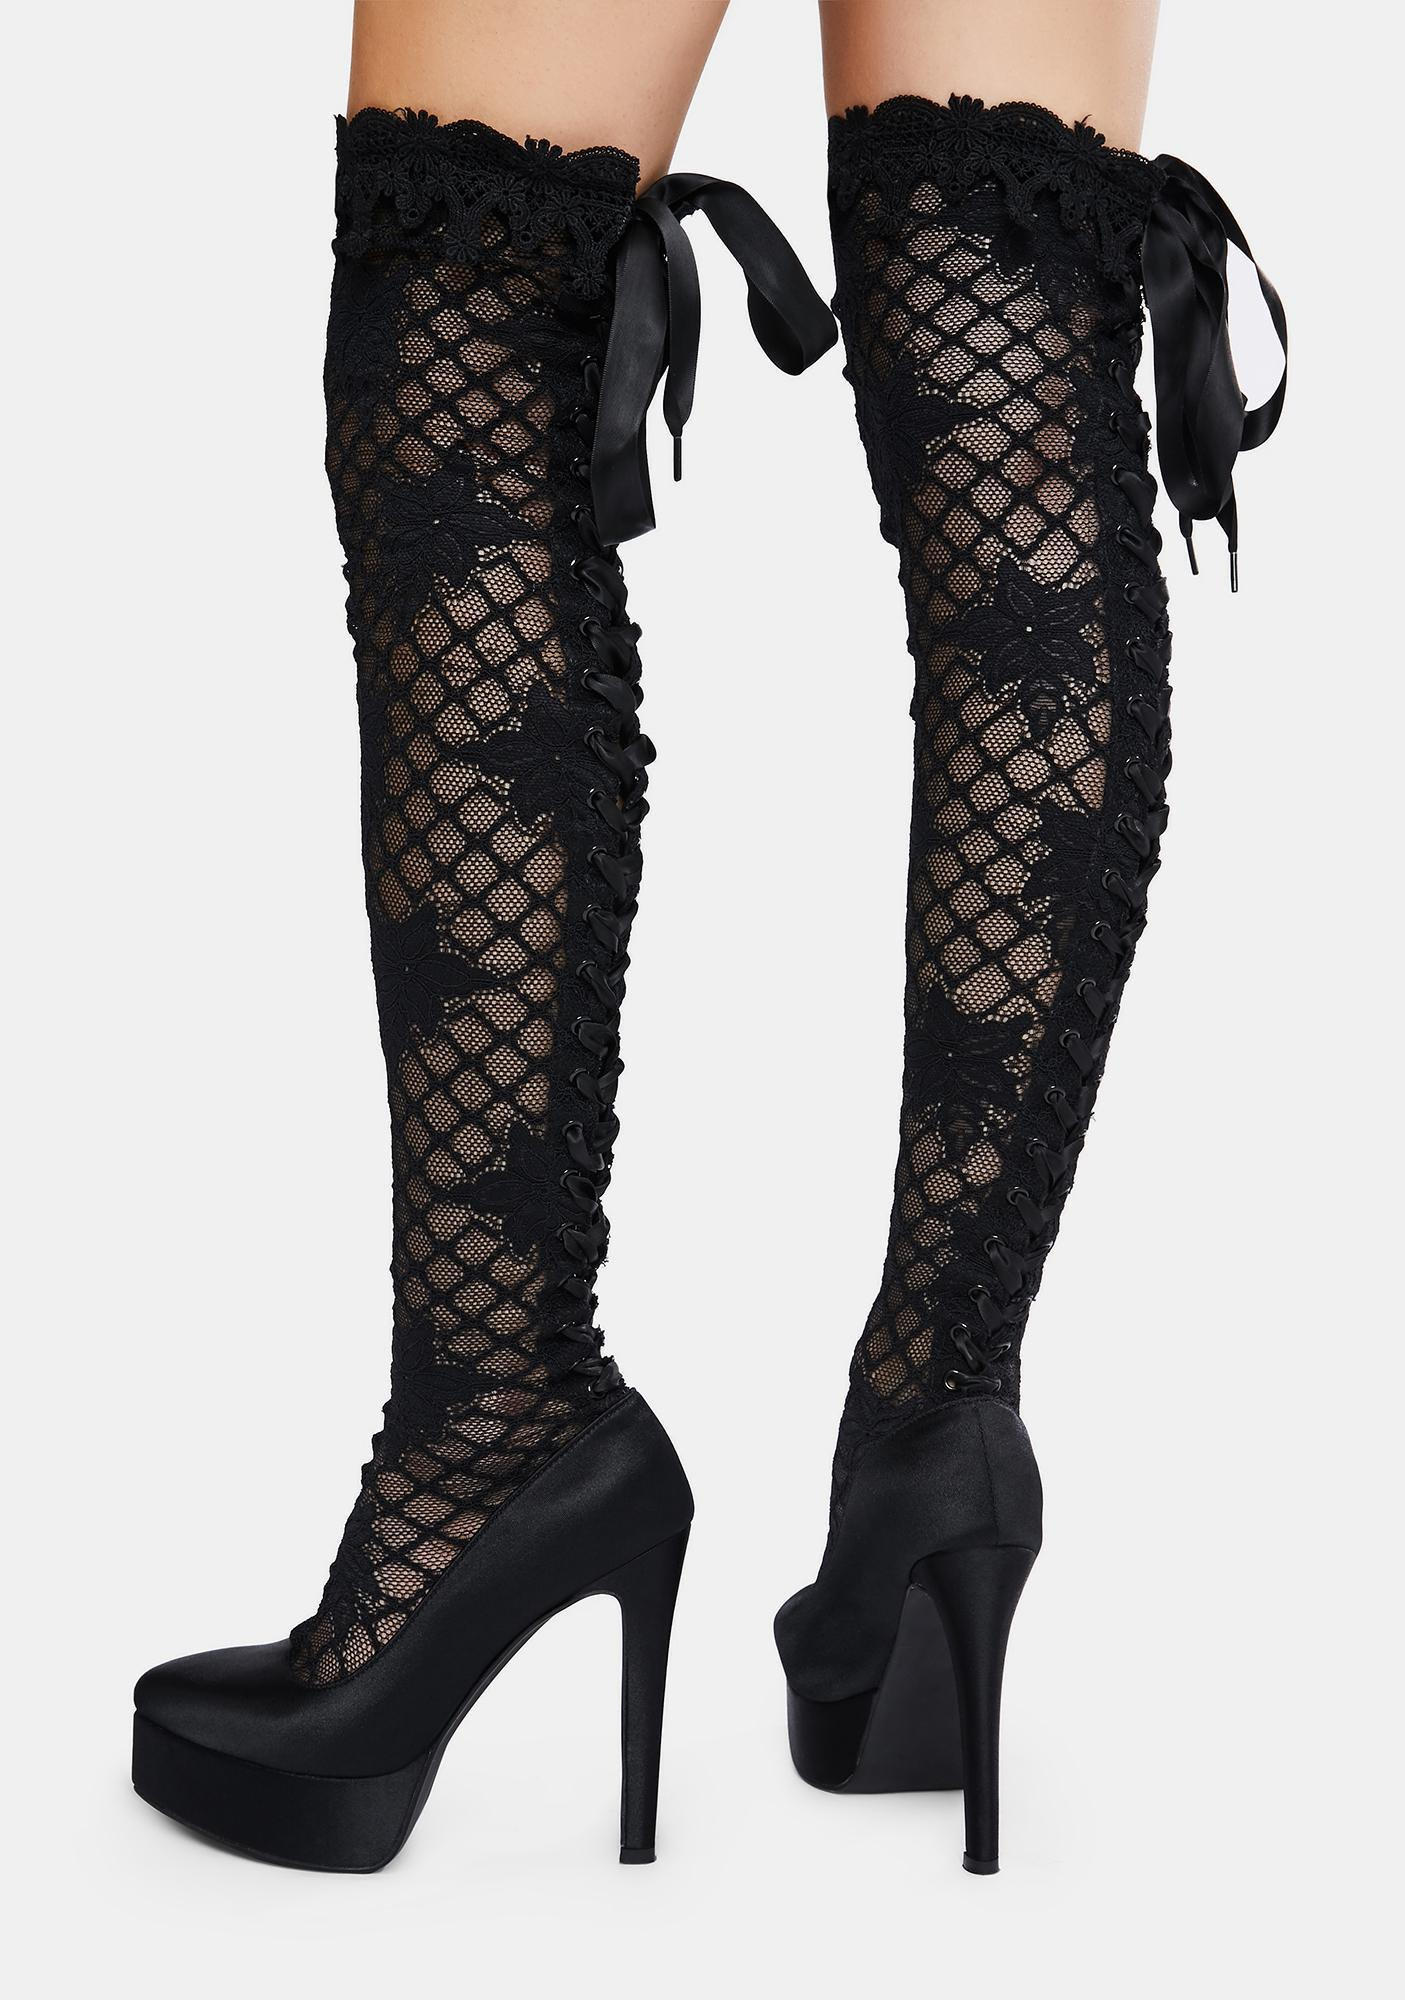 Widow Unspeakable Secrets Lace Thigh High Boots